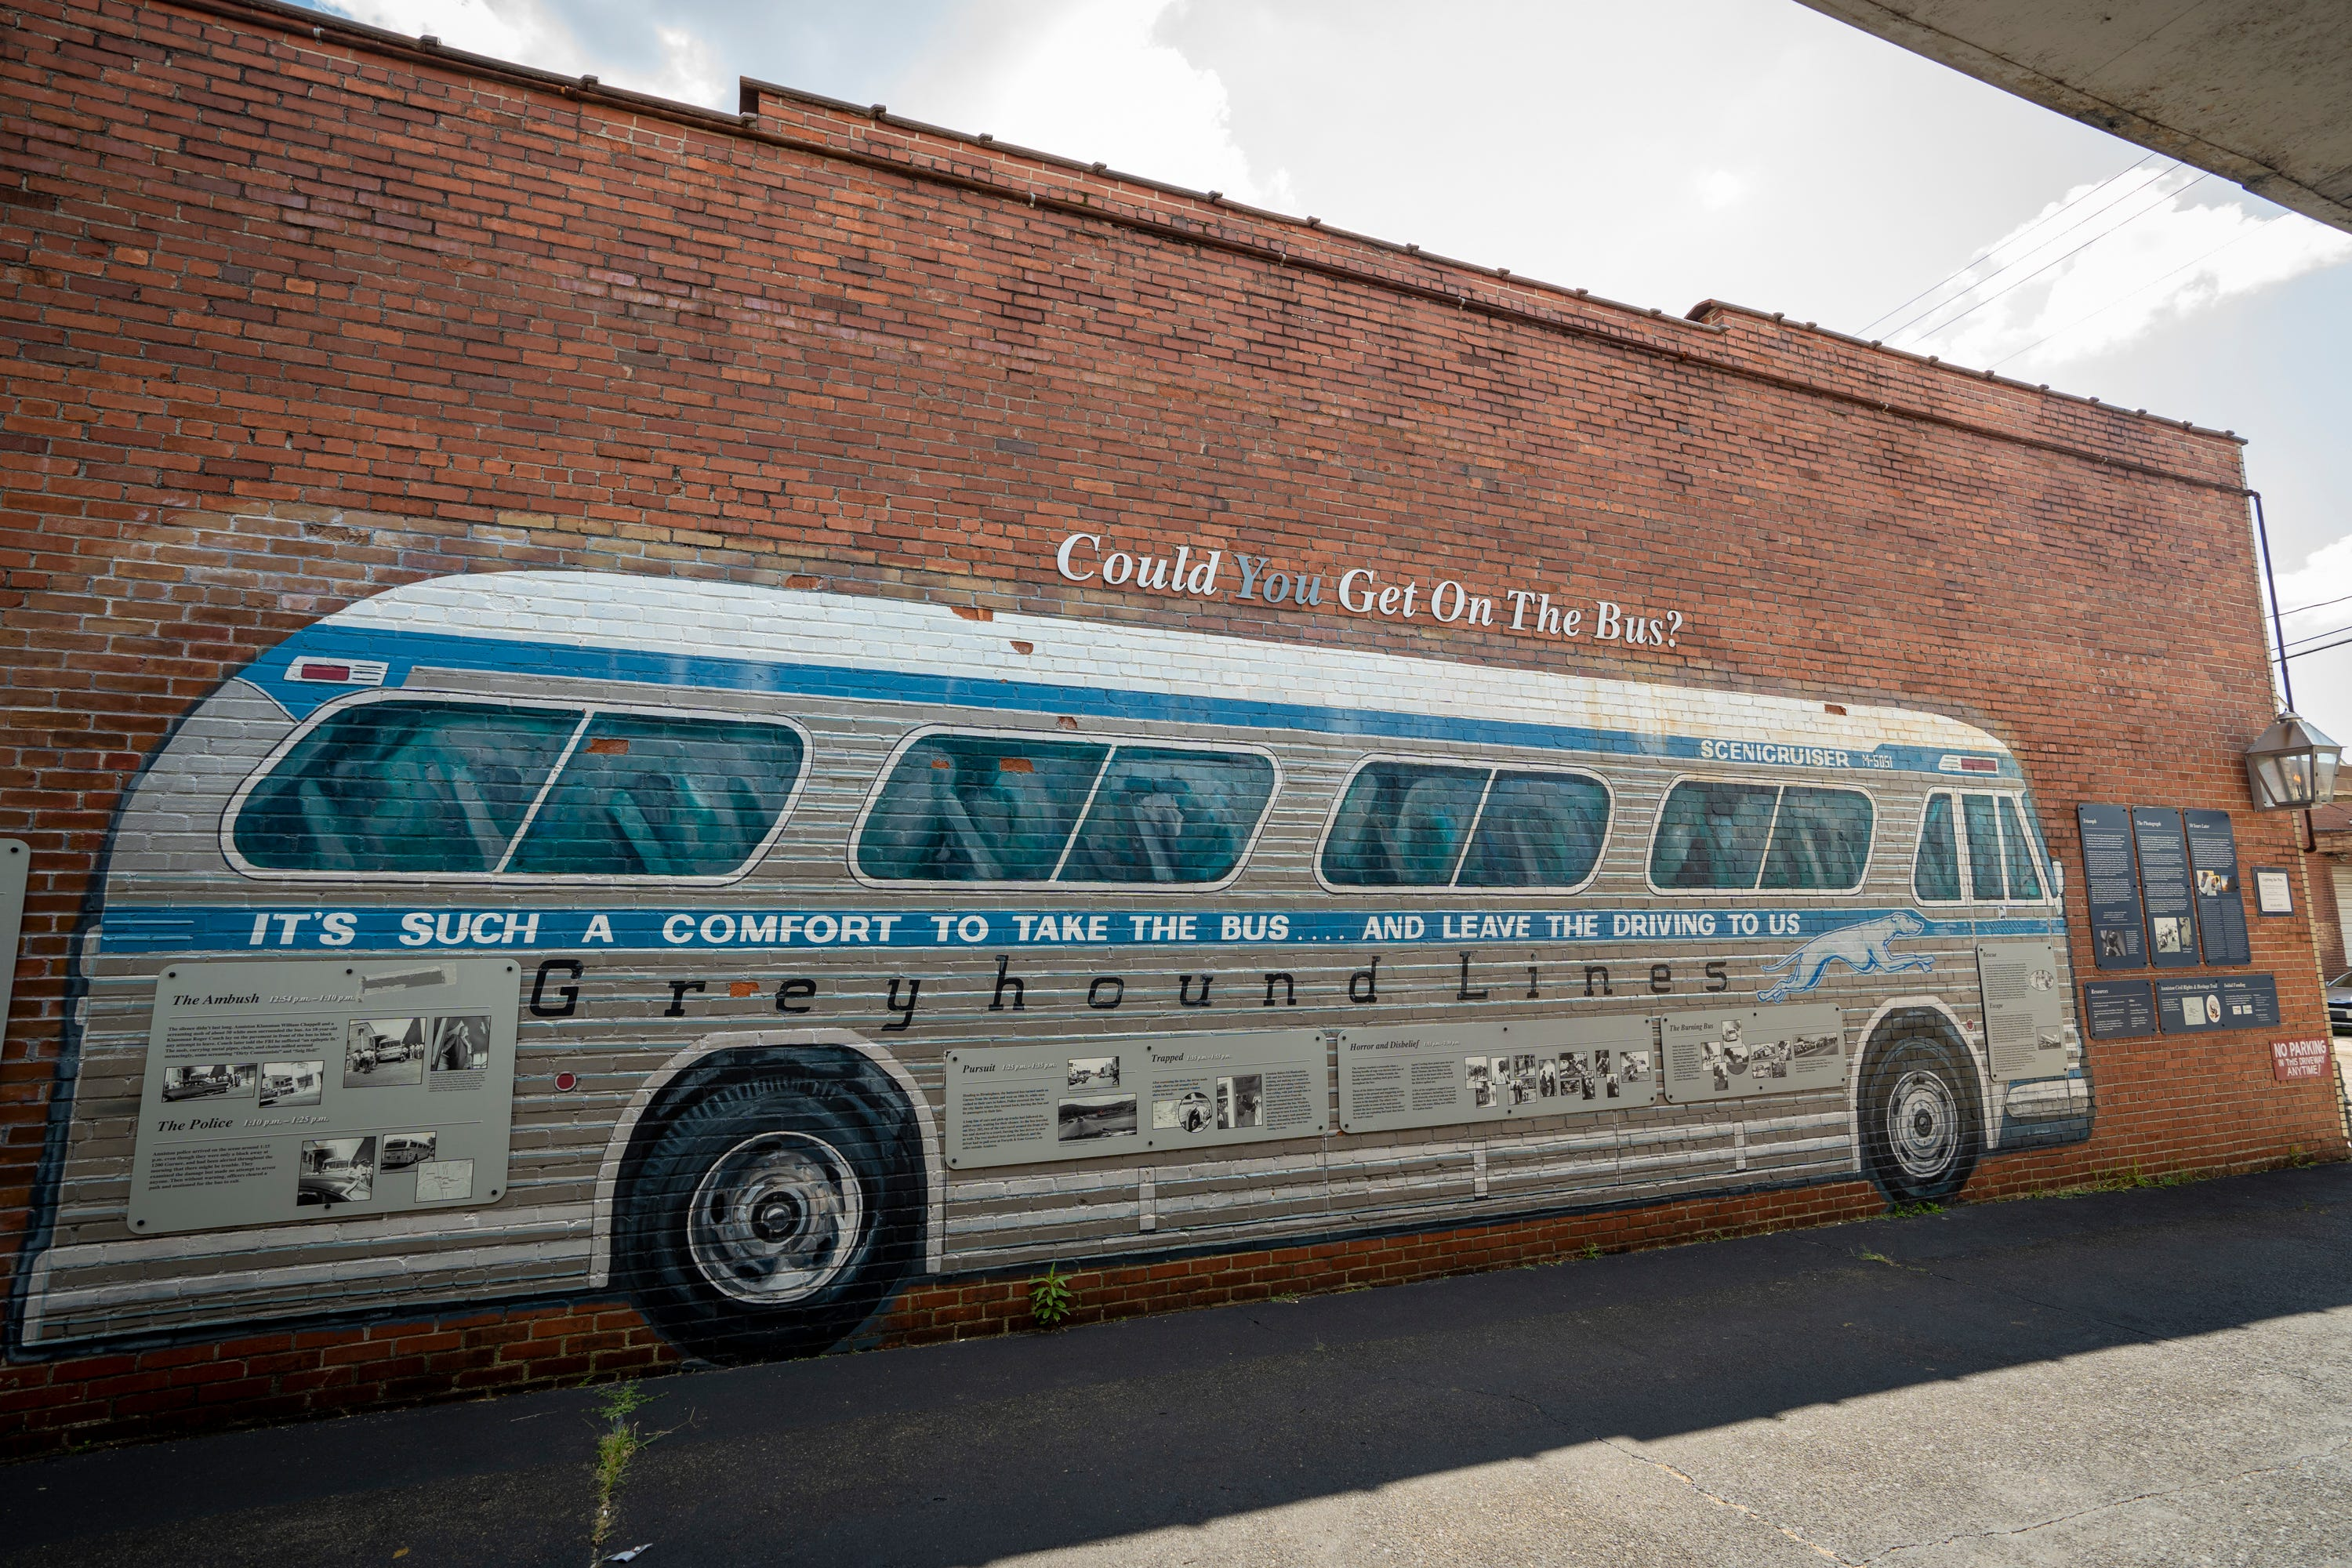 A mural and plaques adorn the alley beside the Greyhound station where Freedom Riders were met by an angry mob in 1961, now preserved as the Freedom Riders National Monument, in Anniston, Ala., on August 13, 2021. Eleven days into the Freedom Rides aimed at ending segregation, Hank Thomas and other Freedom Riders huddled on a bus on May 14, 1961, just outside Anniston, Alabama, as a white mob slashed tires on their bus, pounded it with tire irons and then threw a firebomb inside. As flames spread, the civil rights activists scrambled off the bus into the angry crowd that beat them with bats, fists and those same tire irons. That brutal confrontation could have ended the group's 14-day mission to desegregate public interstate accommodations. Instead, more Freedom Riders boarded buses headed into hostile territory. The rides focused attention on the violent resistance to segregation and are credited with helping integrate accommodations.